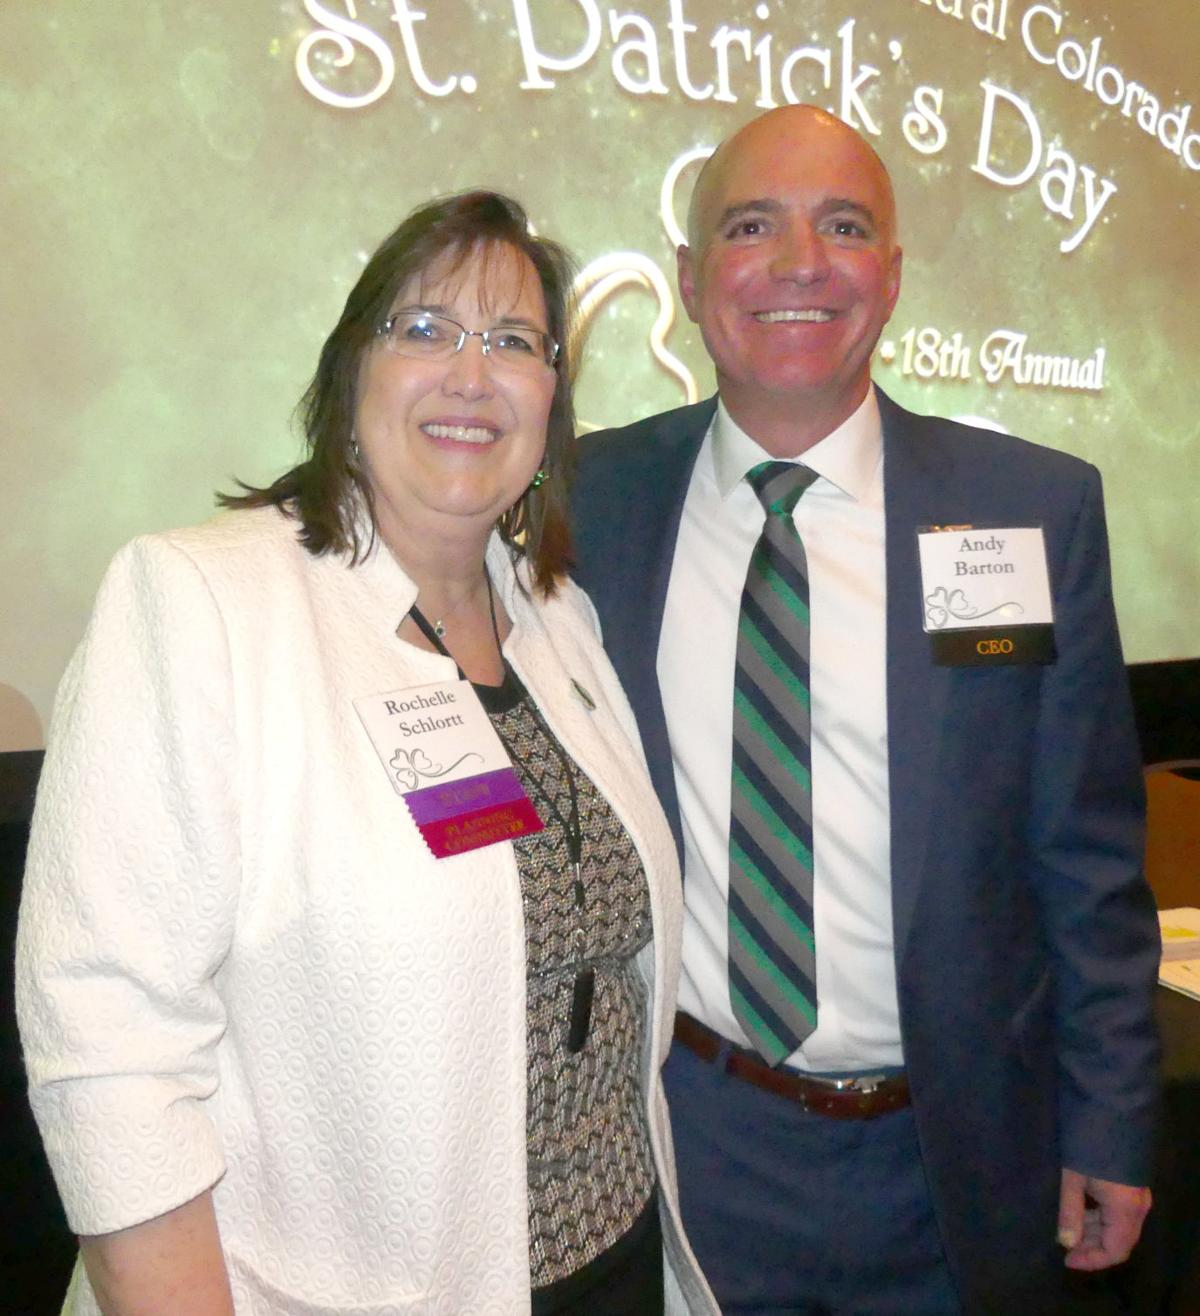 Catholic Charities raises $300,000 for health and human services programs